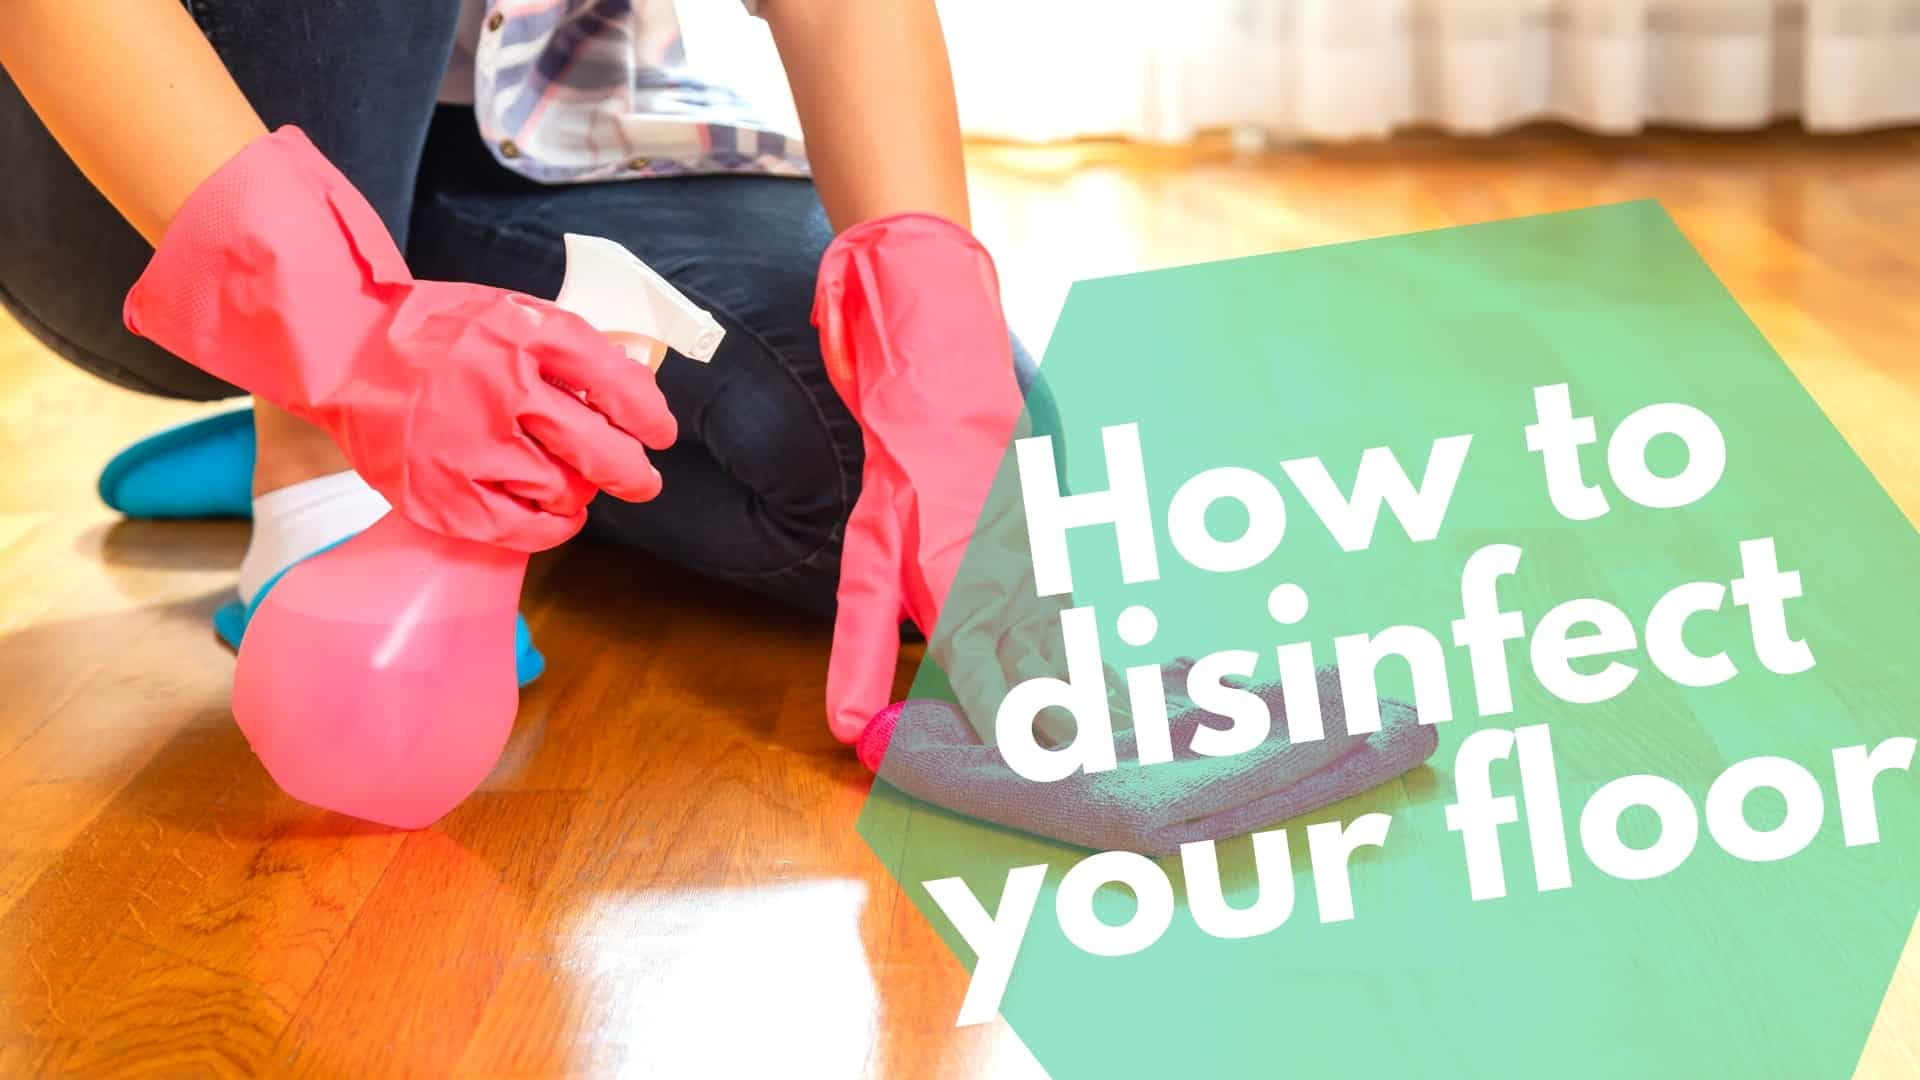 How to disinfect your floor